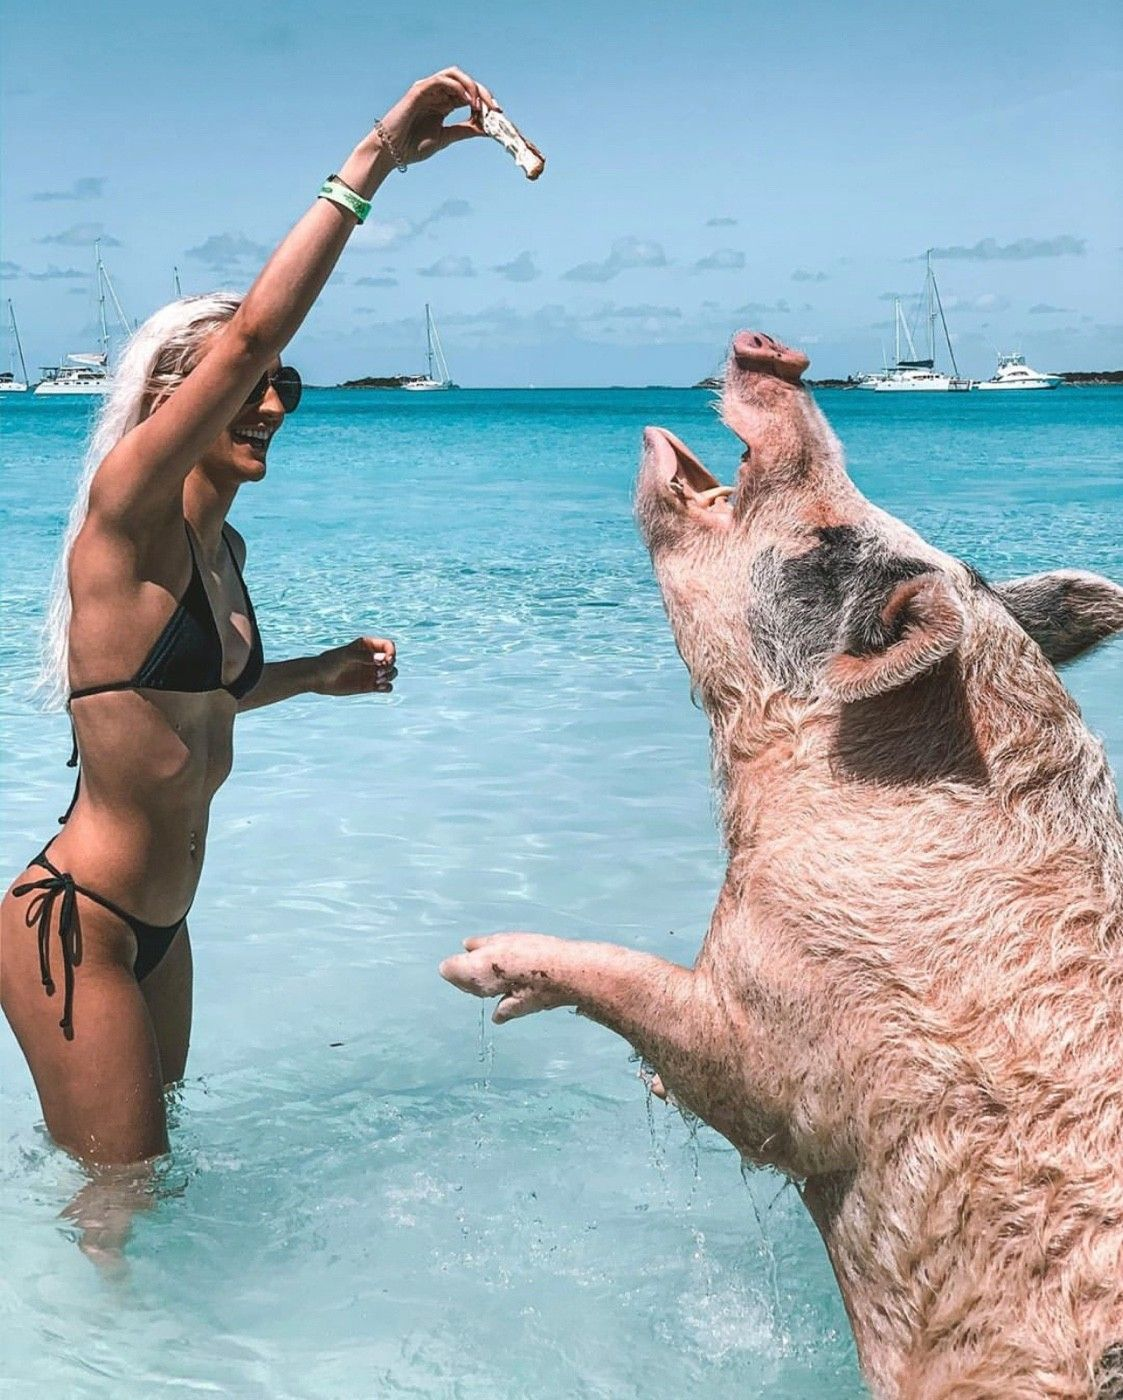 I must say, these pigs have the life. Eating all day while swimming in the Caribbean ocean 👌🏻